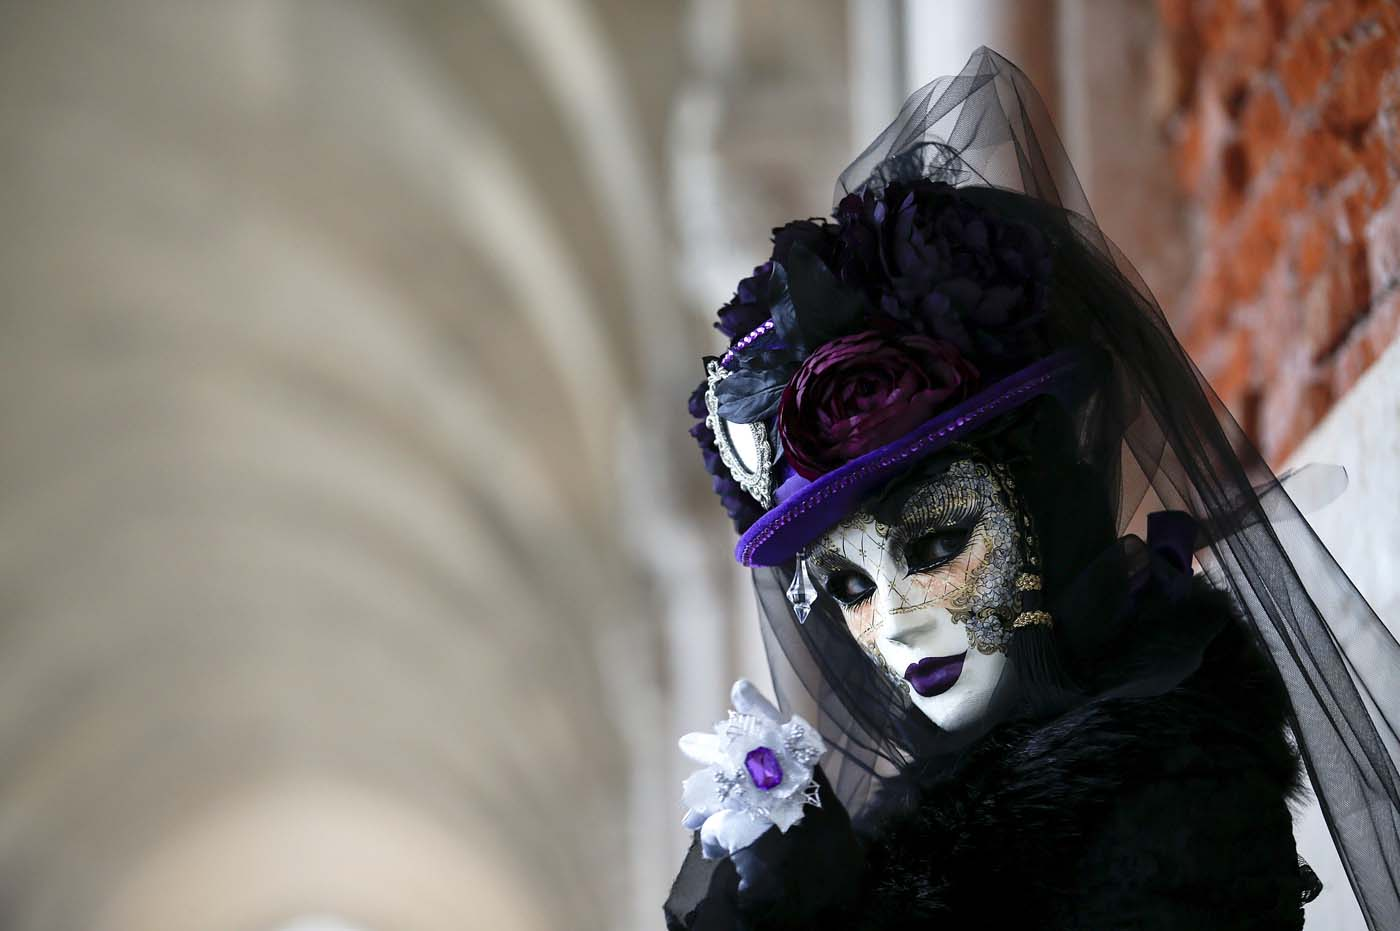 A masked reveller poses during the Venice Carnival, in Piazza San Marco January 30, 2016. REUTERS/Alessandro Bianchi